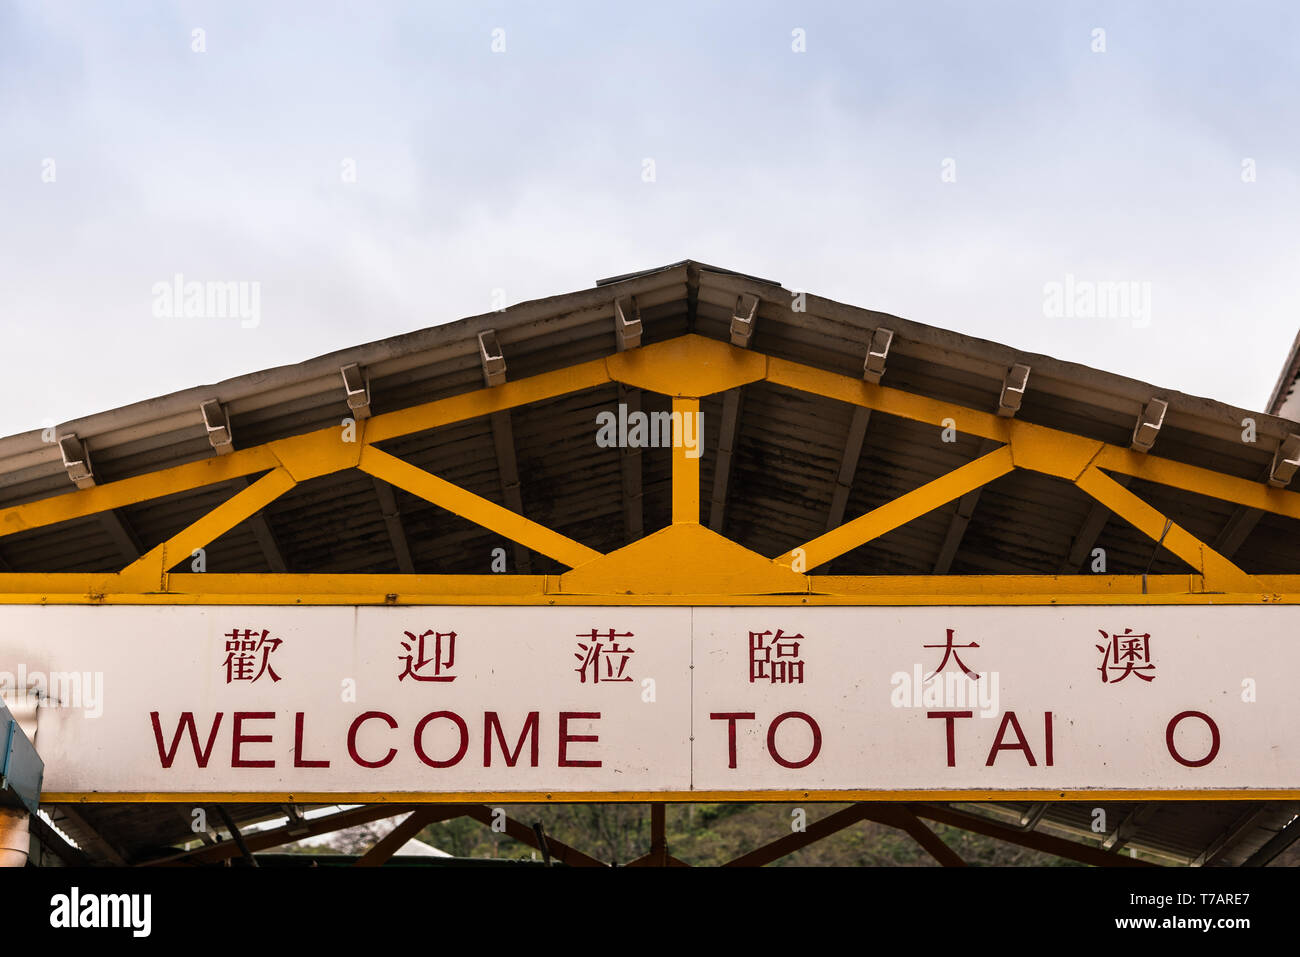 Hong Kong, China - March 7, 2019: Tai O Fishing village. Dual lingual red-on-white yellow sign welcoming visitors to the village, under yellow-beamed  - Stock Image